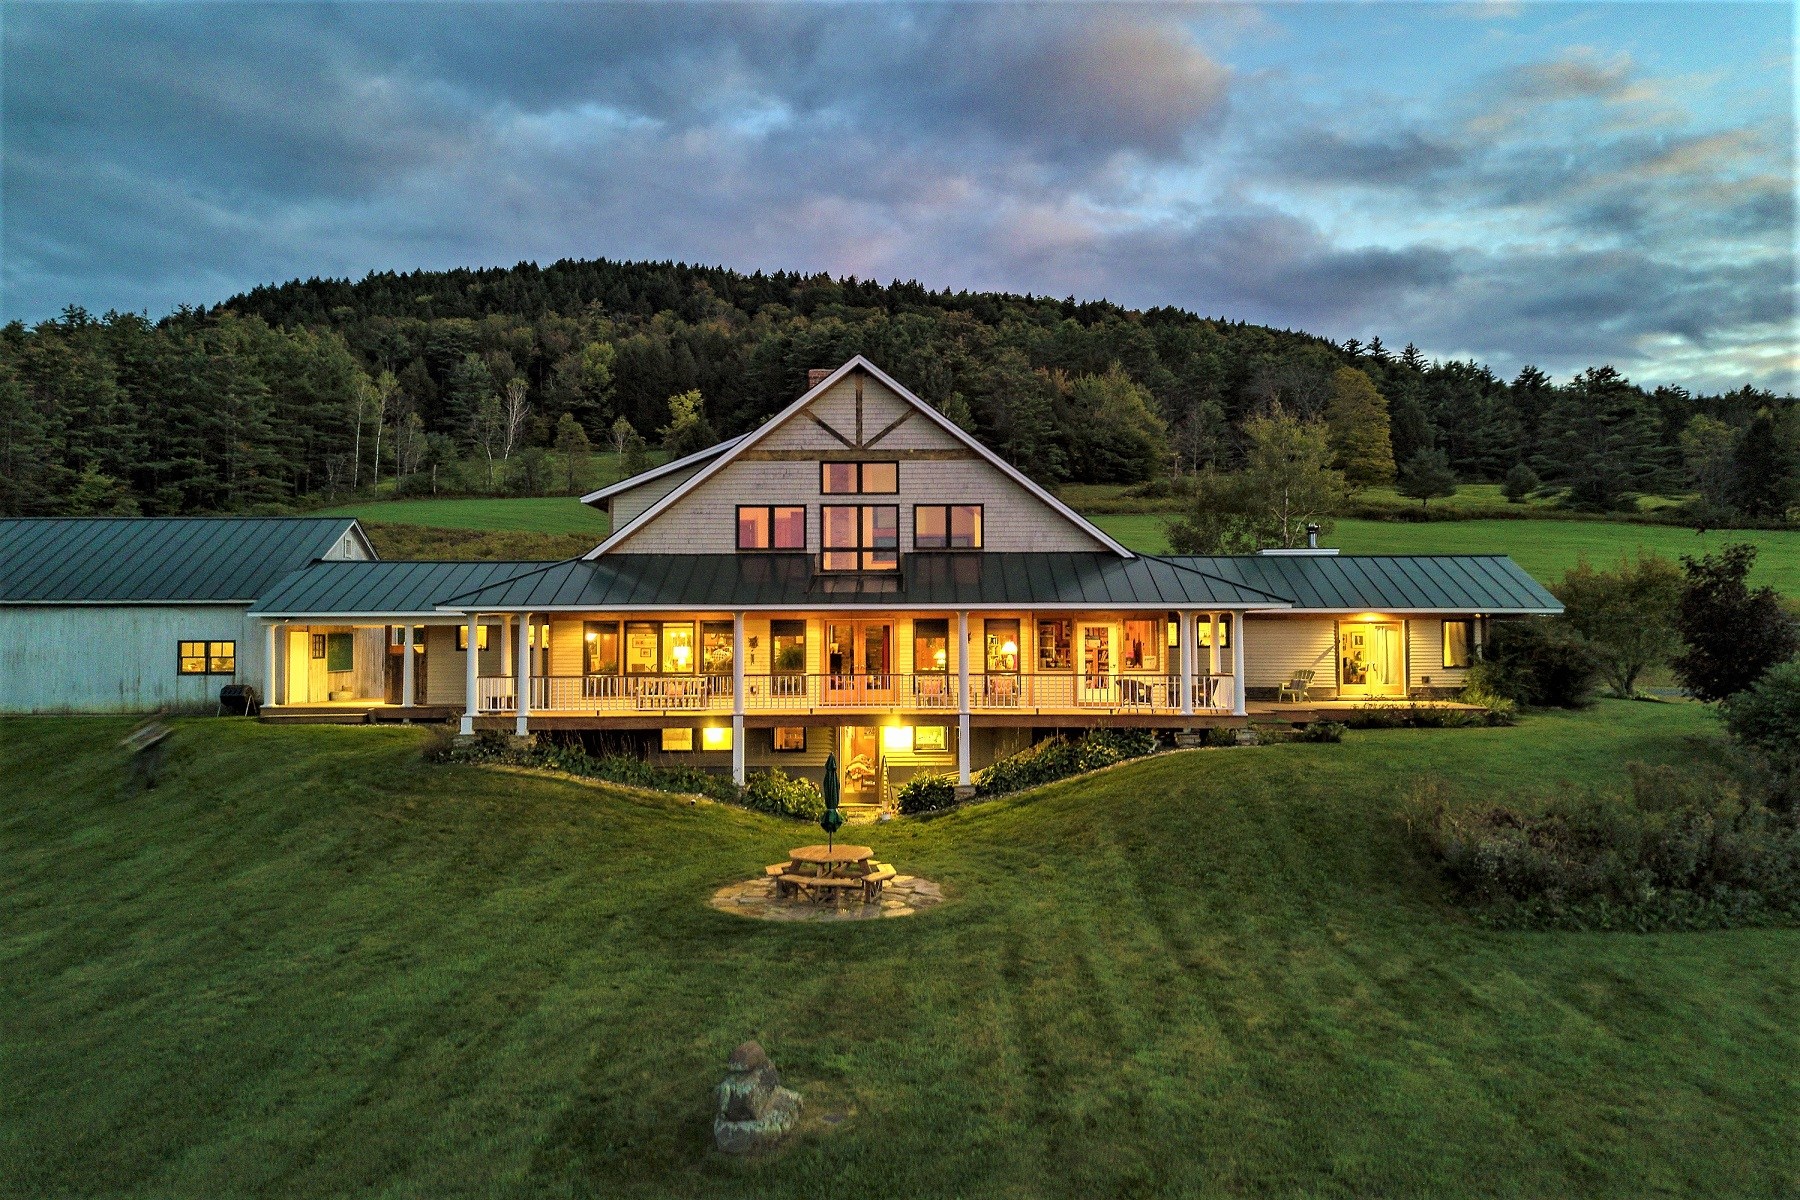 Single Family Homes for Sale at Shepherd's Hill Farm 25 Hartwood Way Hartland, Vermont 05048 United States